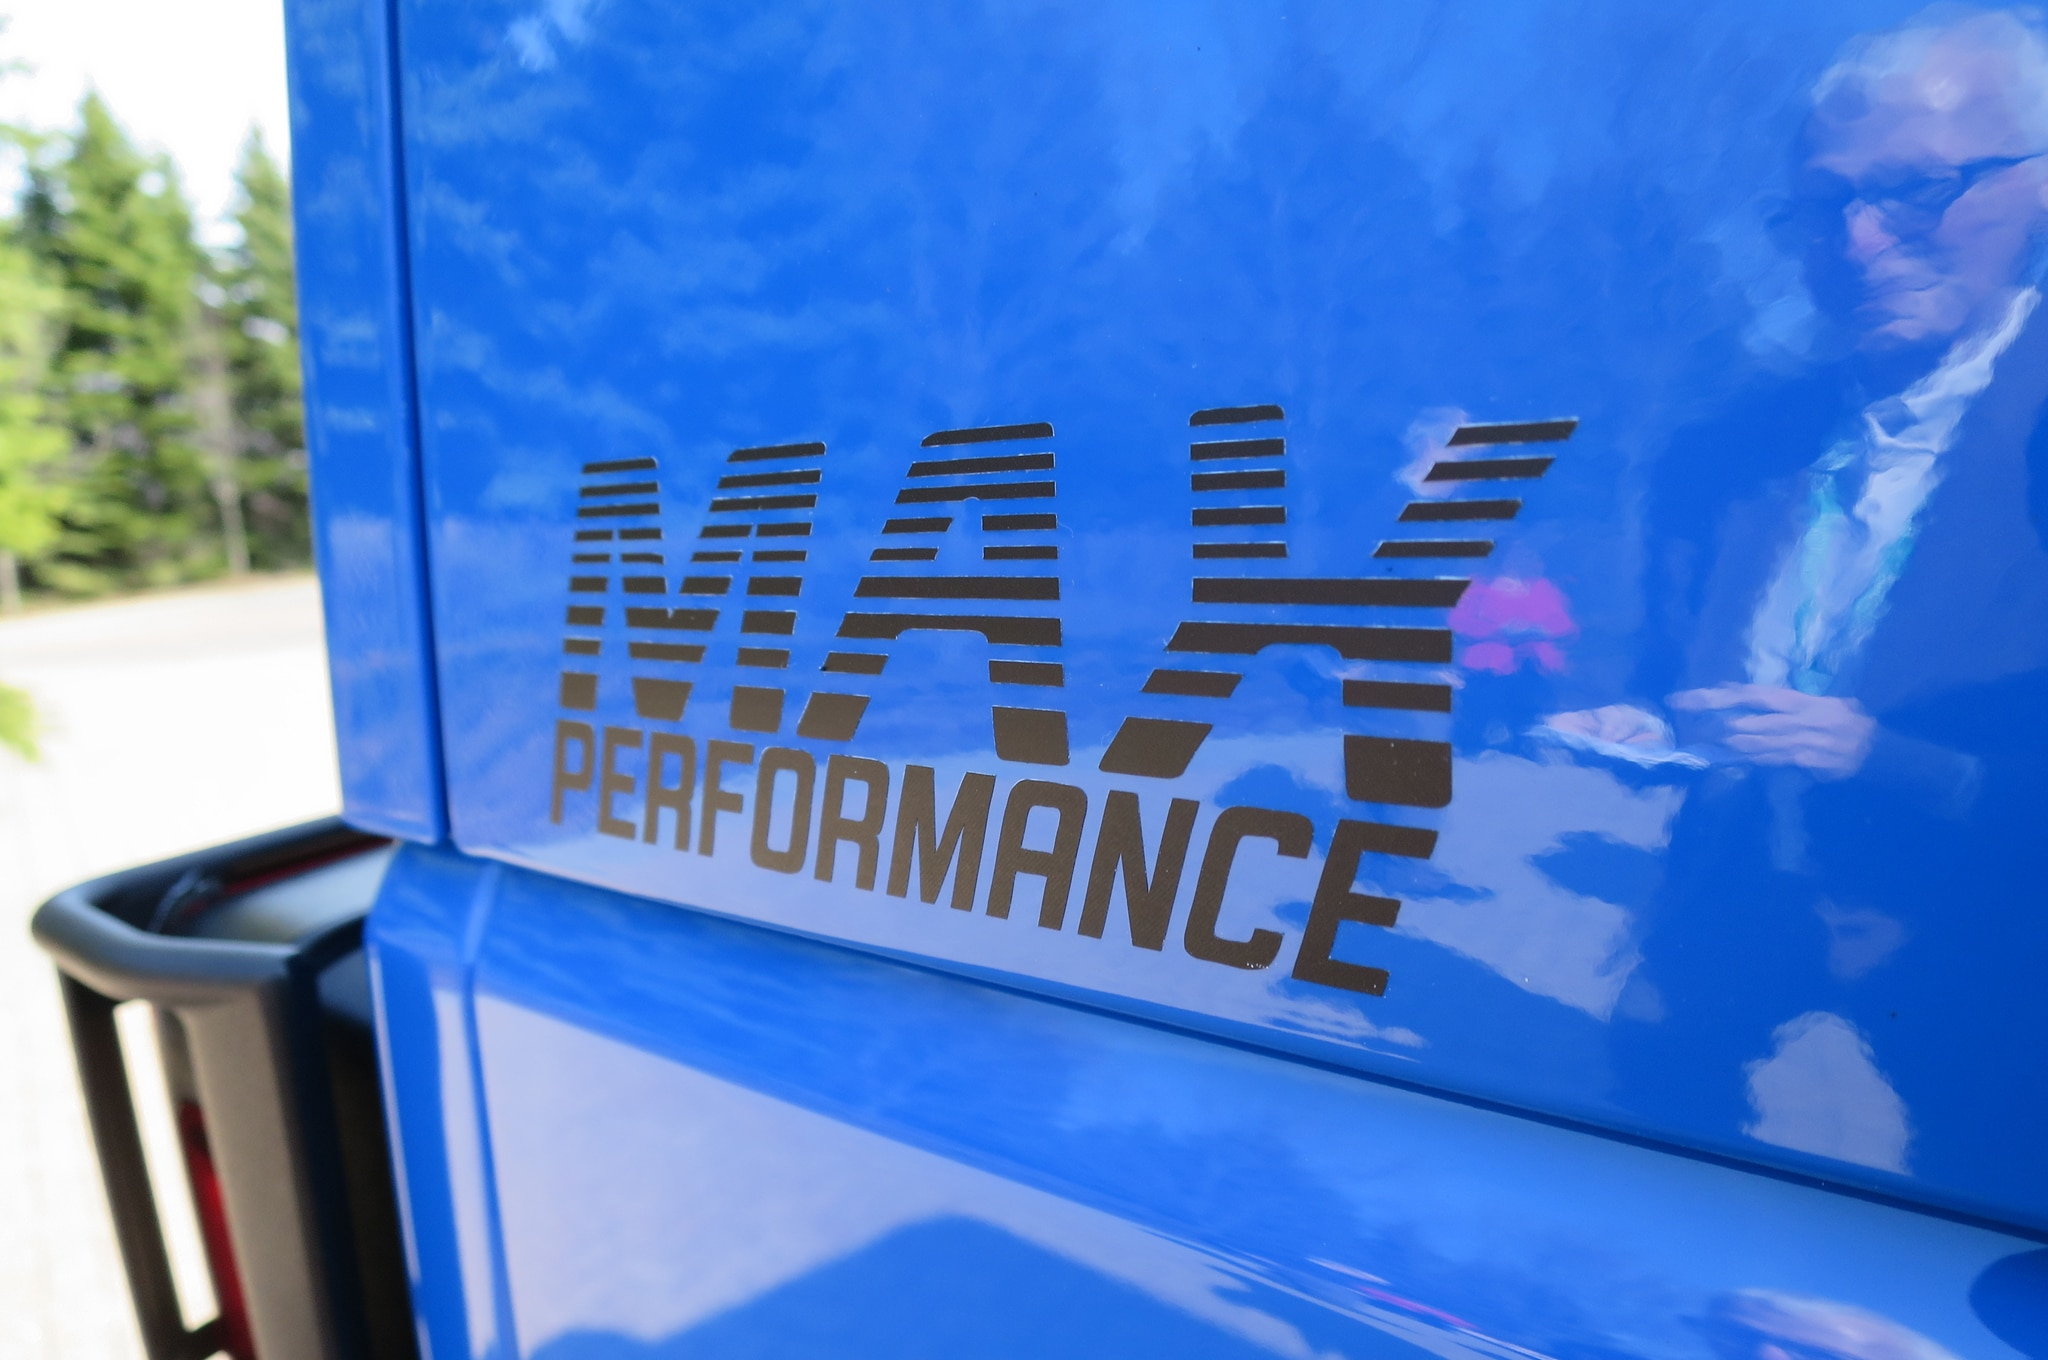 Jeep Wrangler Maximum Performance Concept exterior decals